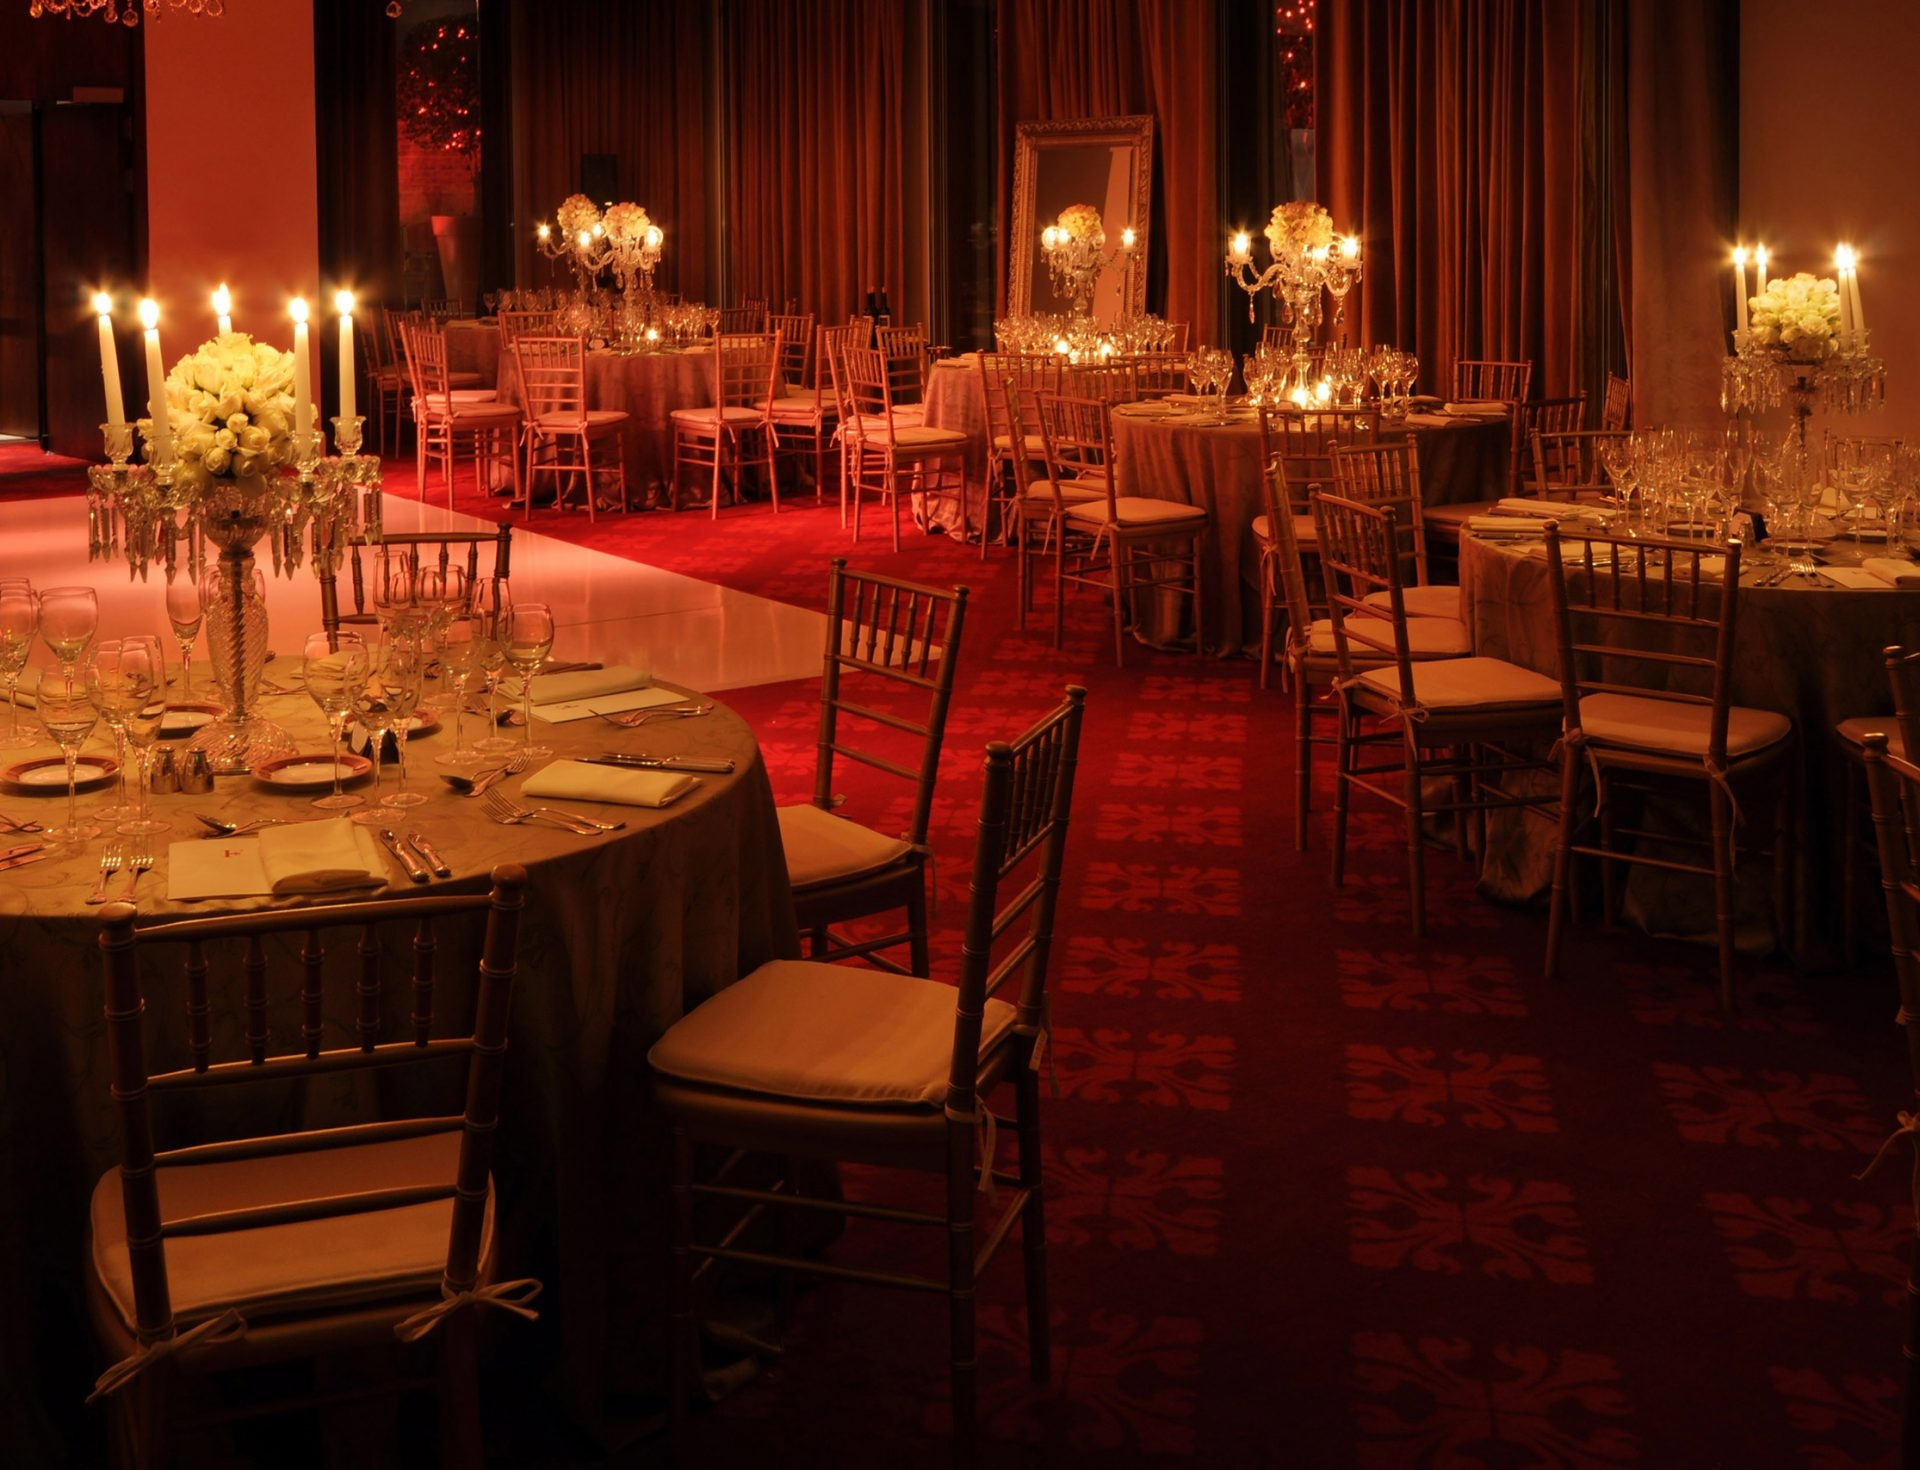 Interior view of the ballroom with reception tables and candle light